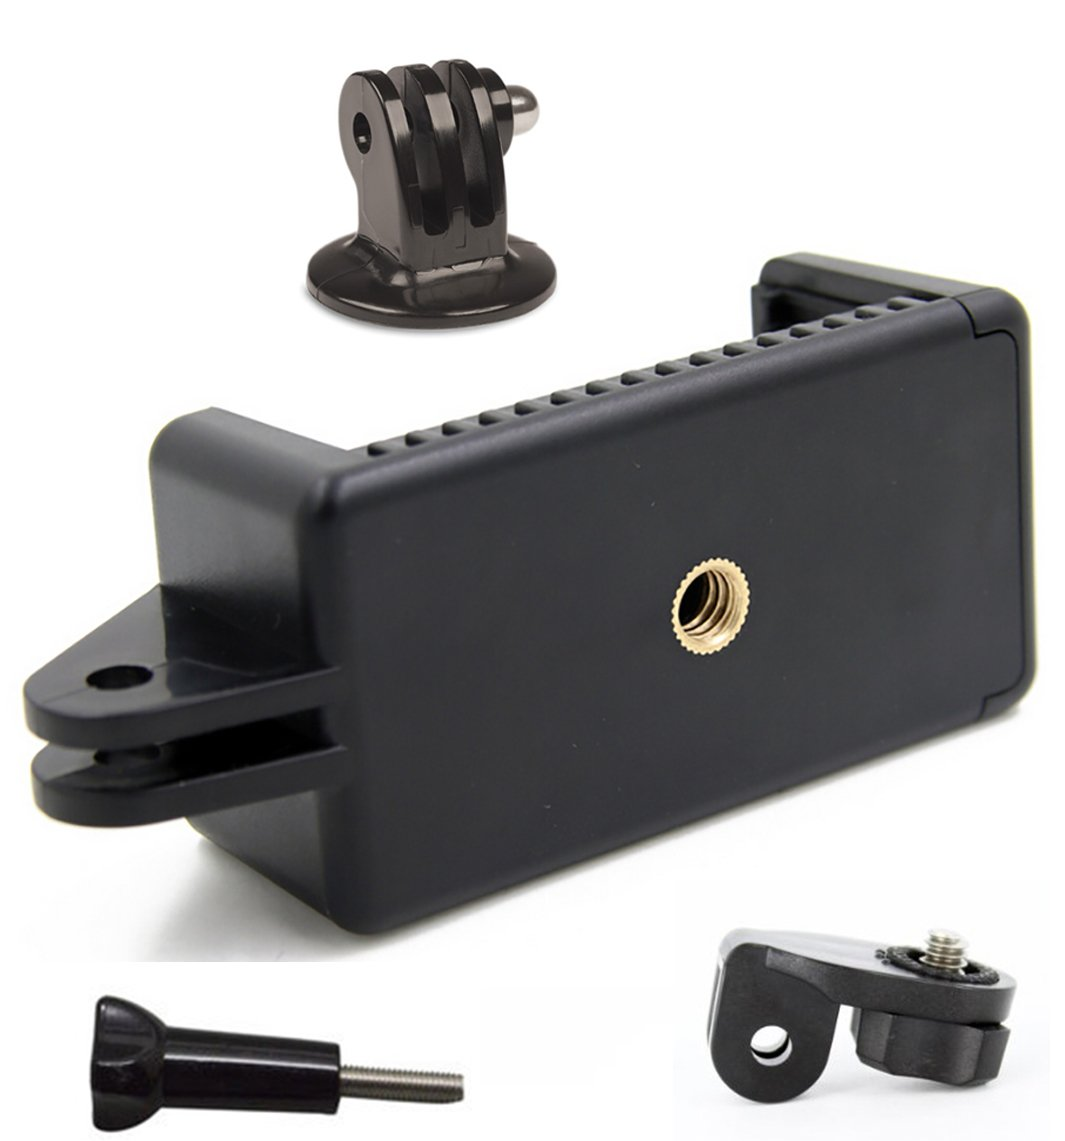 Livestream Gear | Universal Smartphone Holder w/GoPro Style Mount Attachment, Tripod Adapter, Screw Adapter, & Screw. Connect Your Phone to Any GoPro Mount, or Tripod.